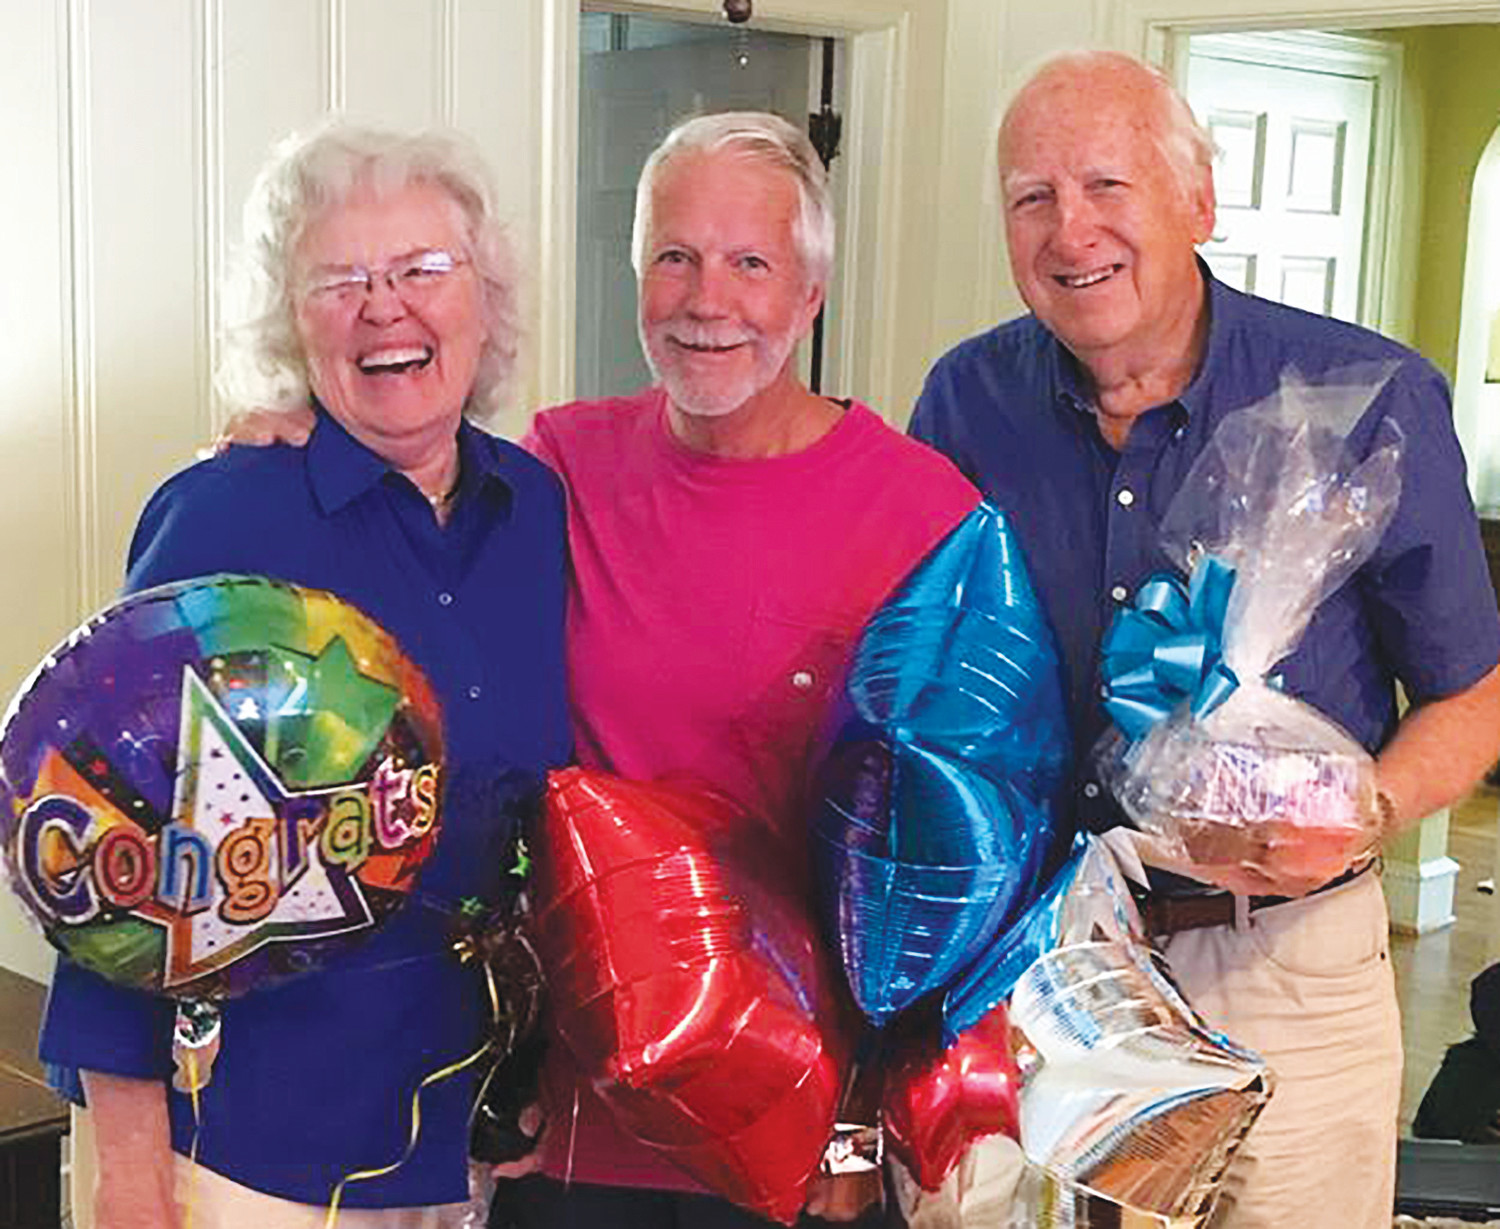 W. Louis Griffith, center, who received the Clarendon County Chamber of Commerce's Ambassador of the Year award, was surprised with balloons and a gift from Carole and George Summers after he was announced as this year's award recipient.